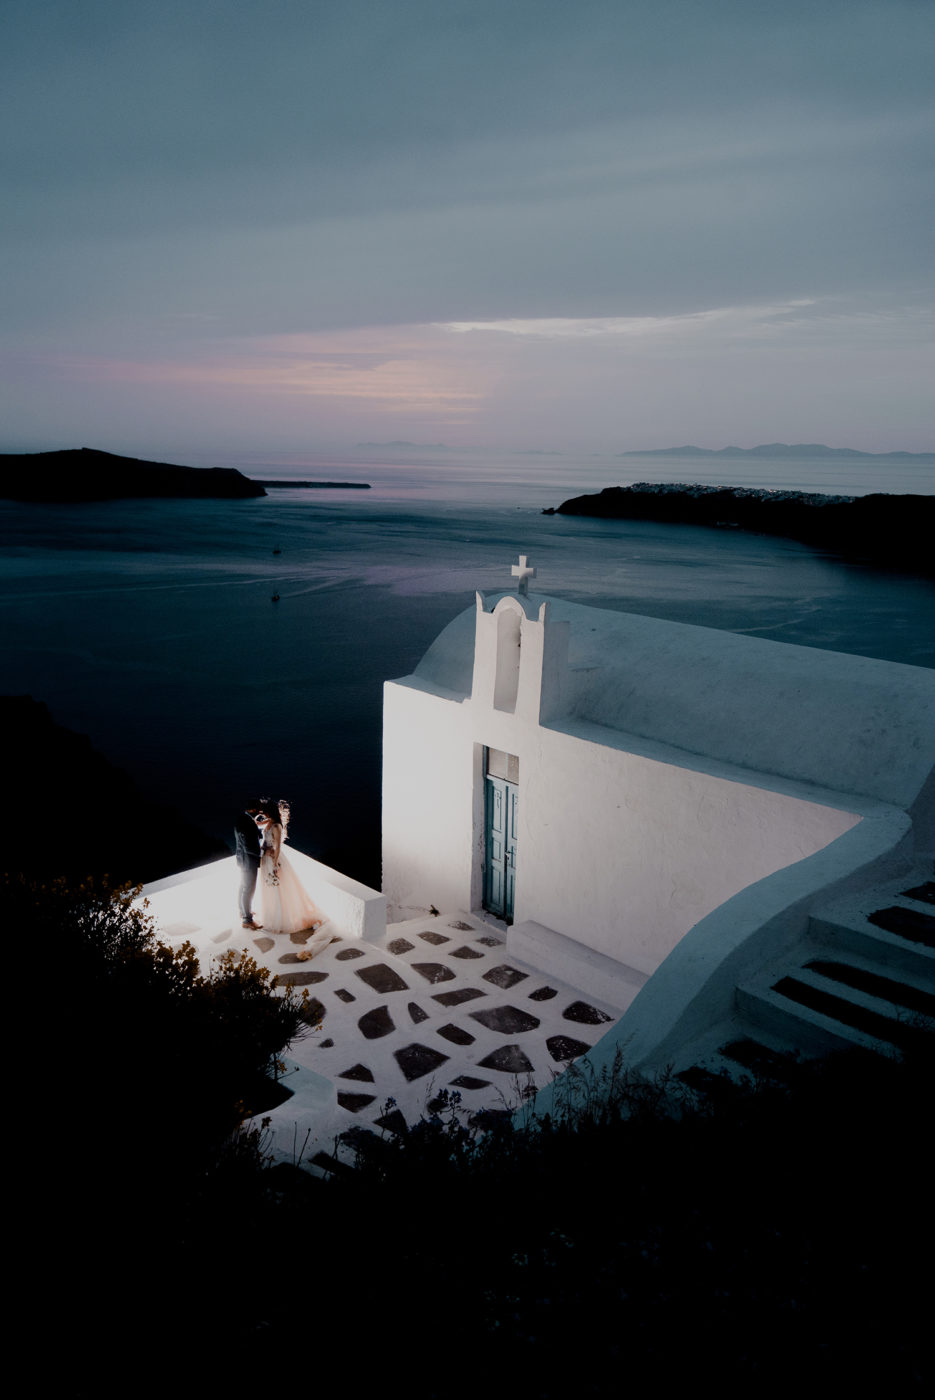 Yiannis-Sissy-Santorini-Wedding-Photography-by-Kirill-Samarits (17)